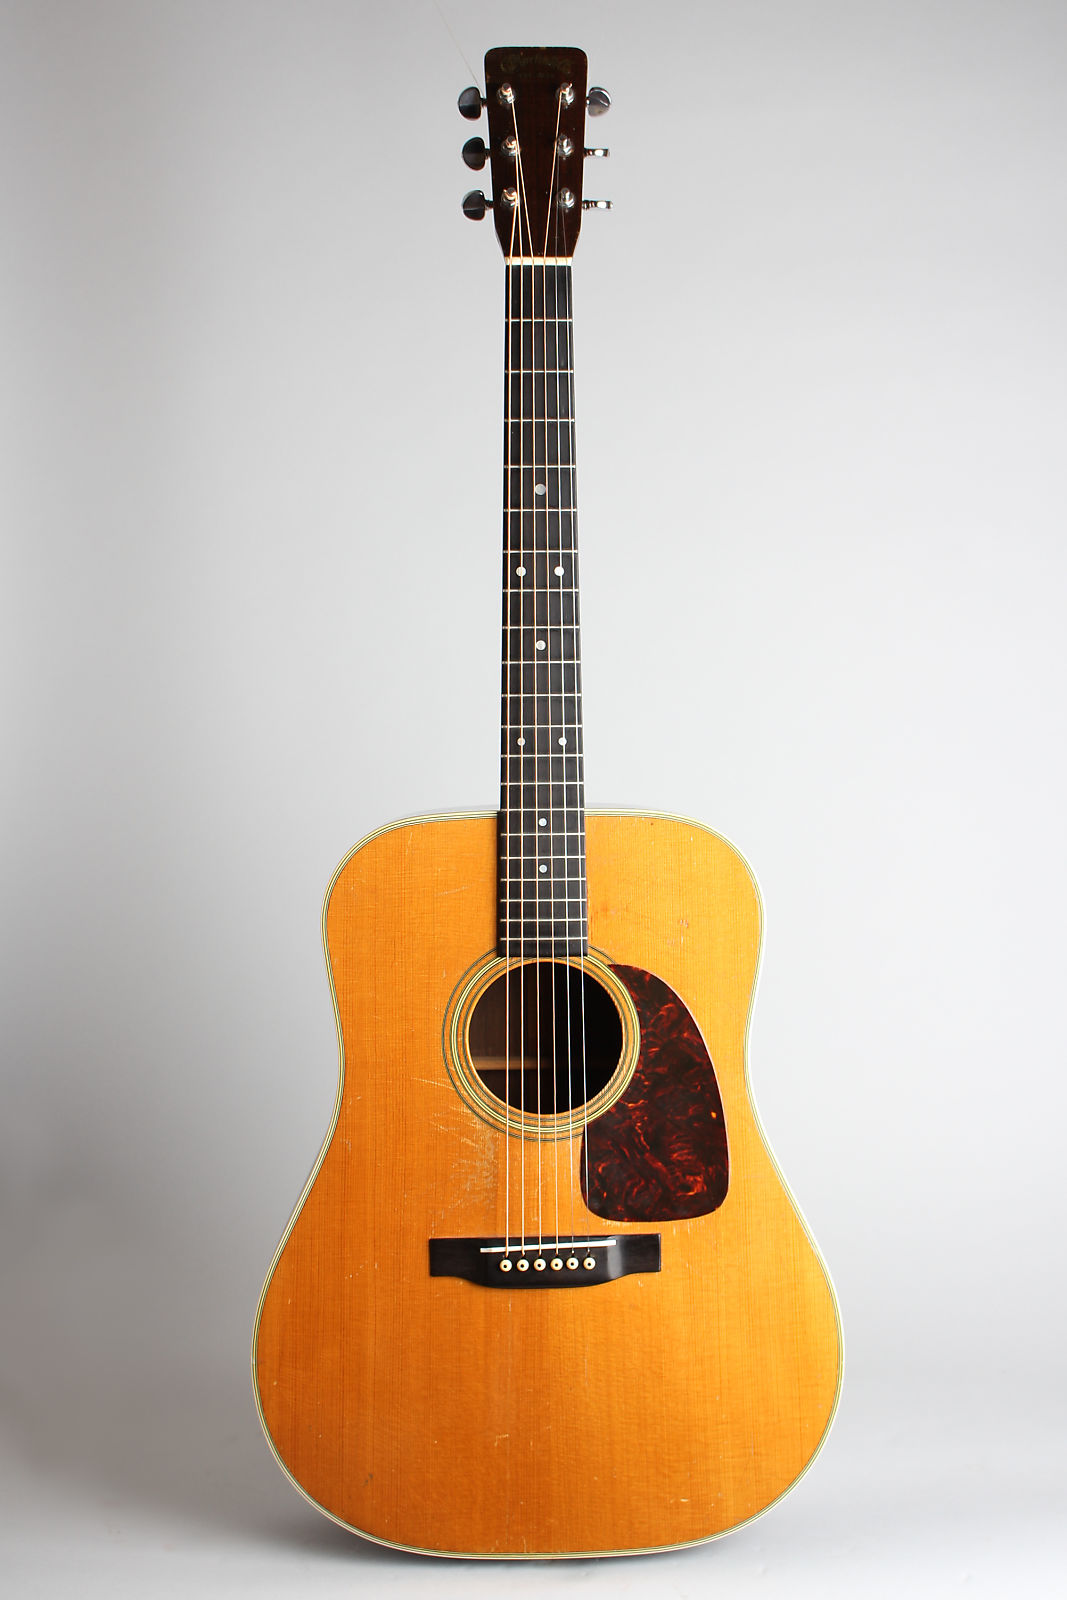 C. F. Martin  D-28 Flat Top Acoustic Guitar (1959), ser. #170569, molded plastic hard shell case.